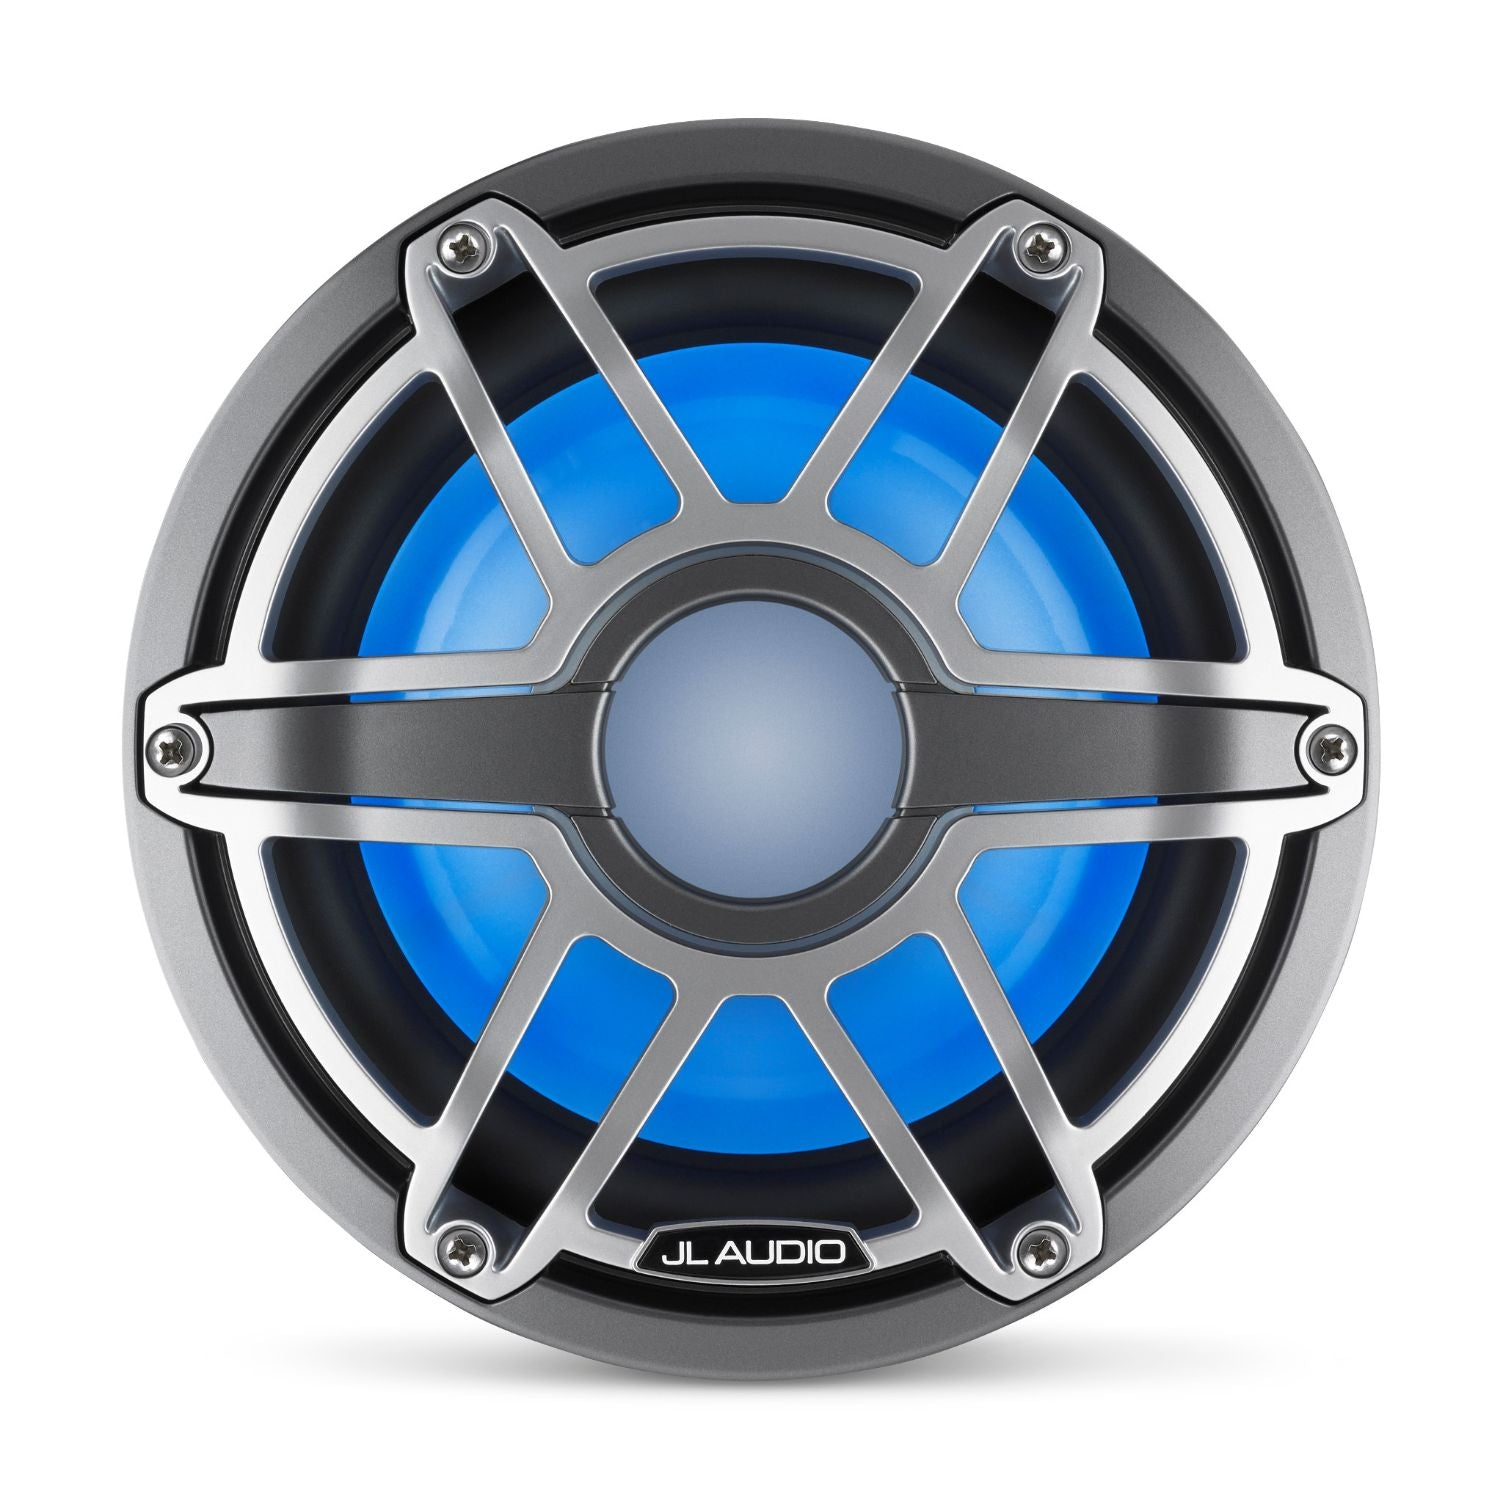 Front Overhead of M6-8IB-S-GmTi-i Subwoofer Lit with Blue